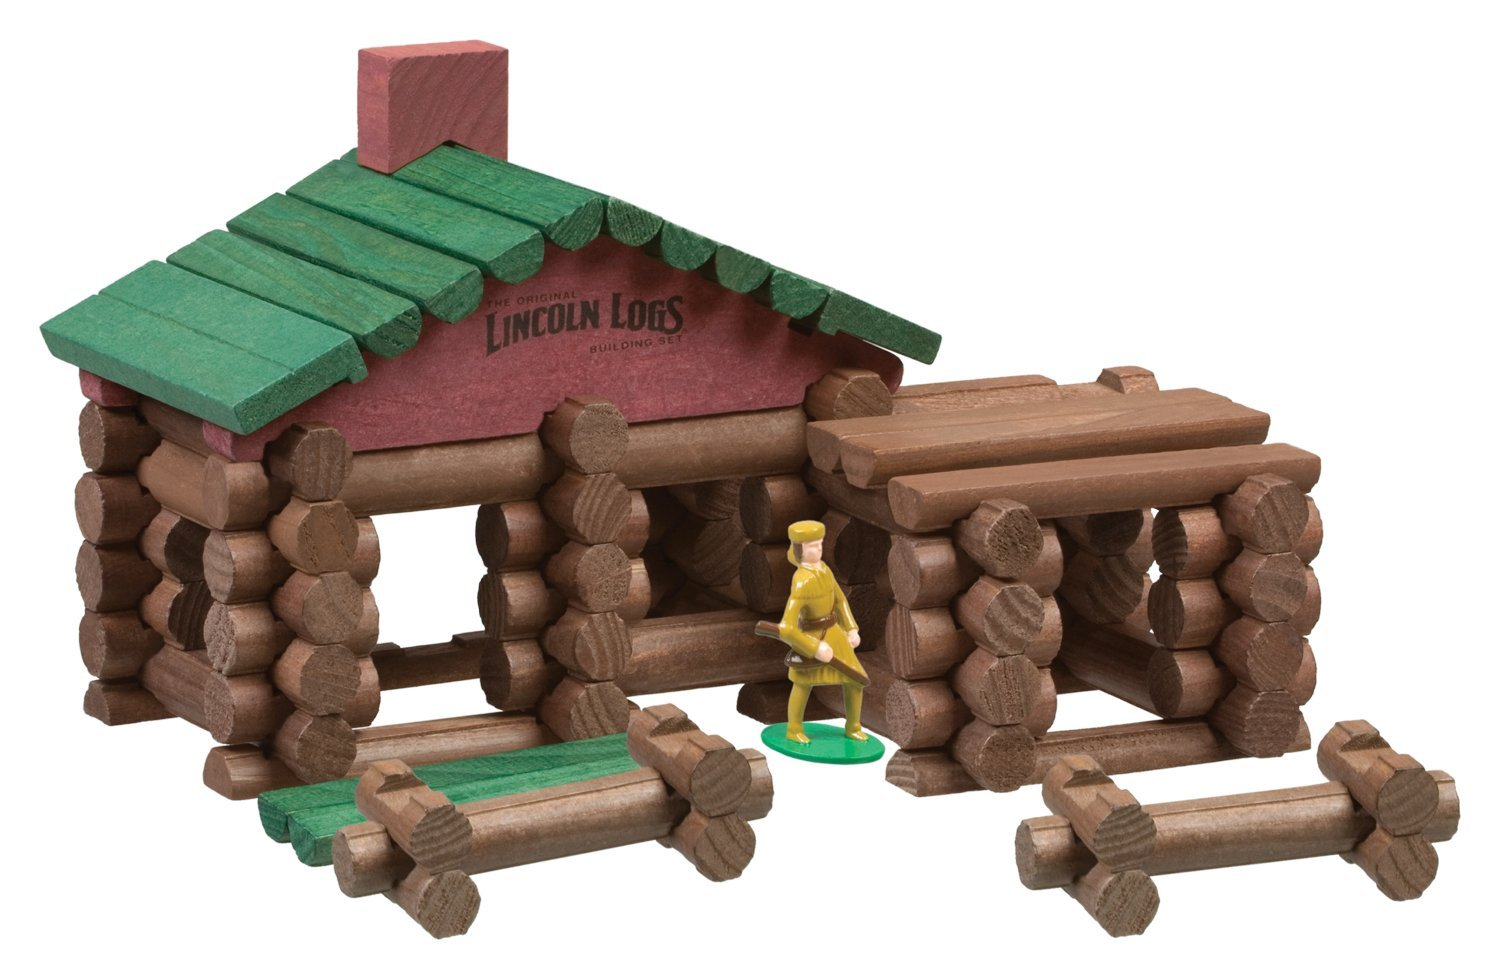 Construction Toys for Kids: 15 Totally Awesome Toys for Boys and Girls